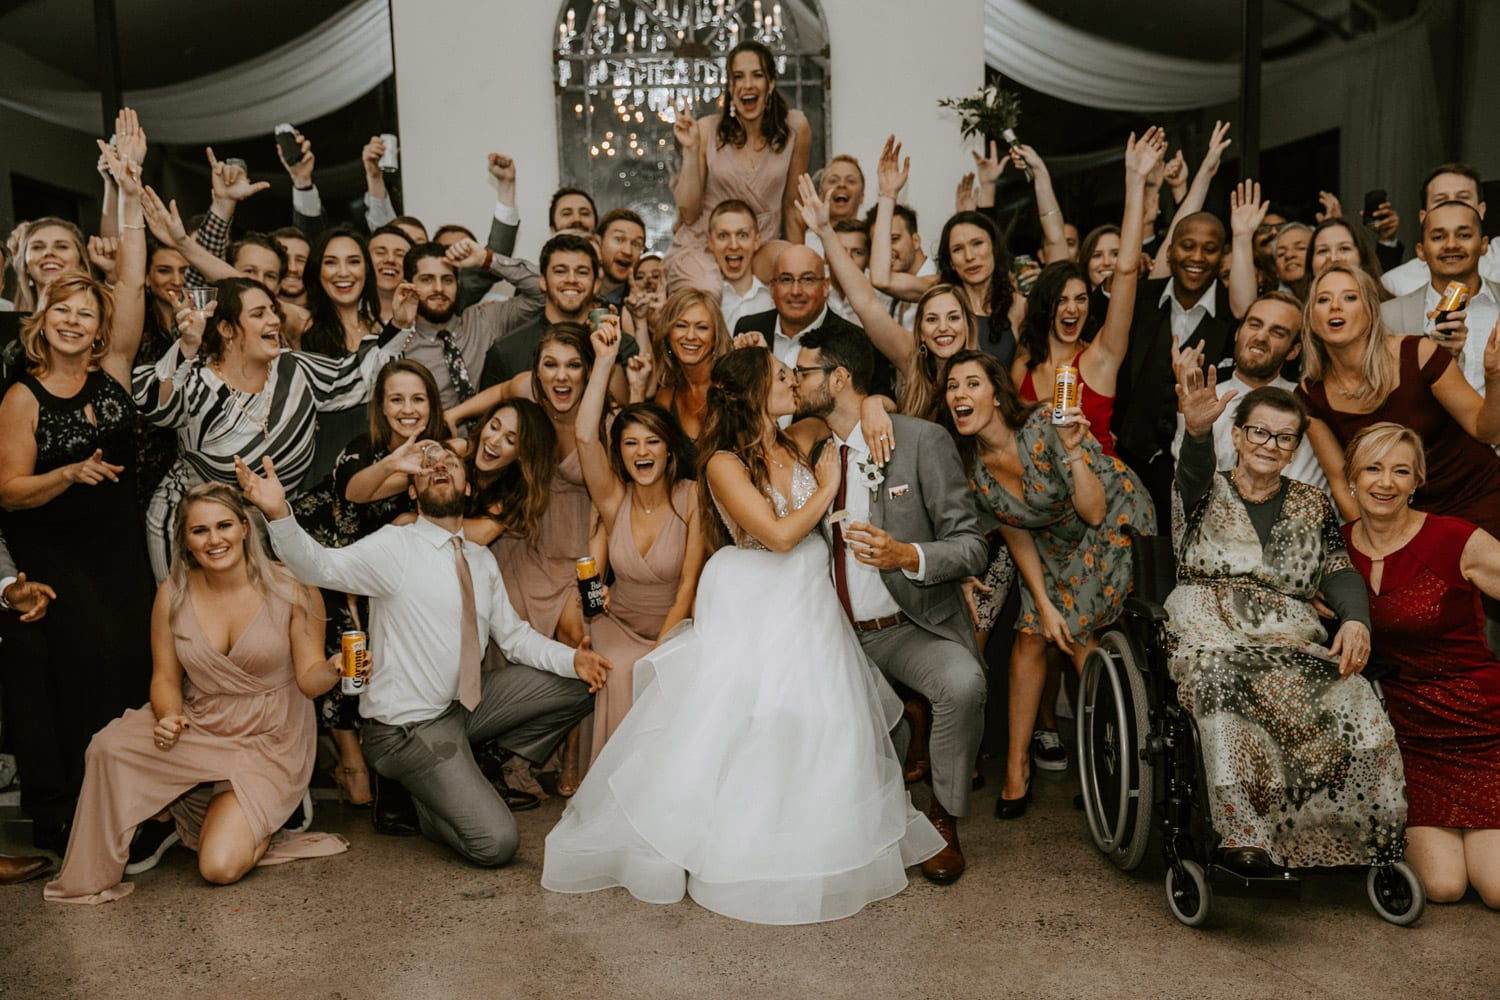 Wedding party poses by bride and groom during indoor ceremony